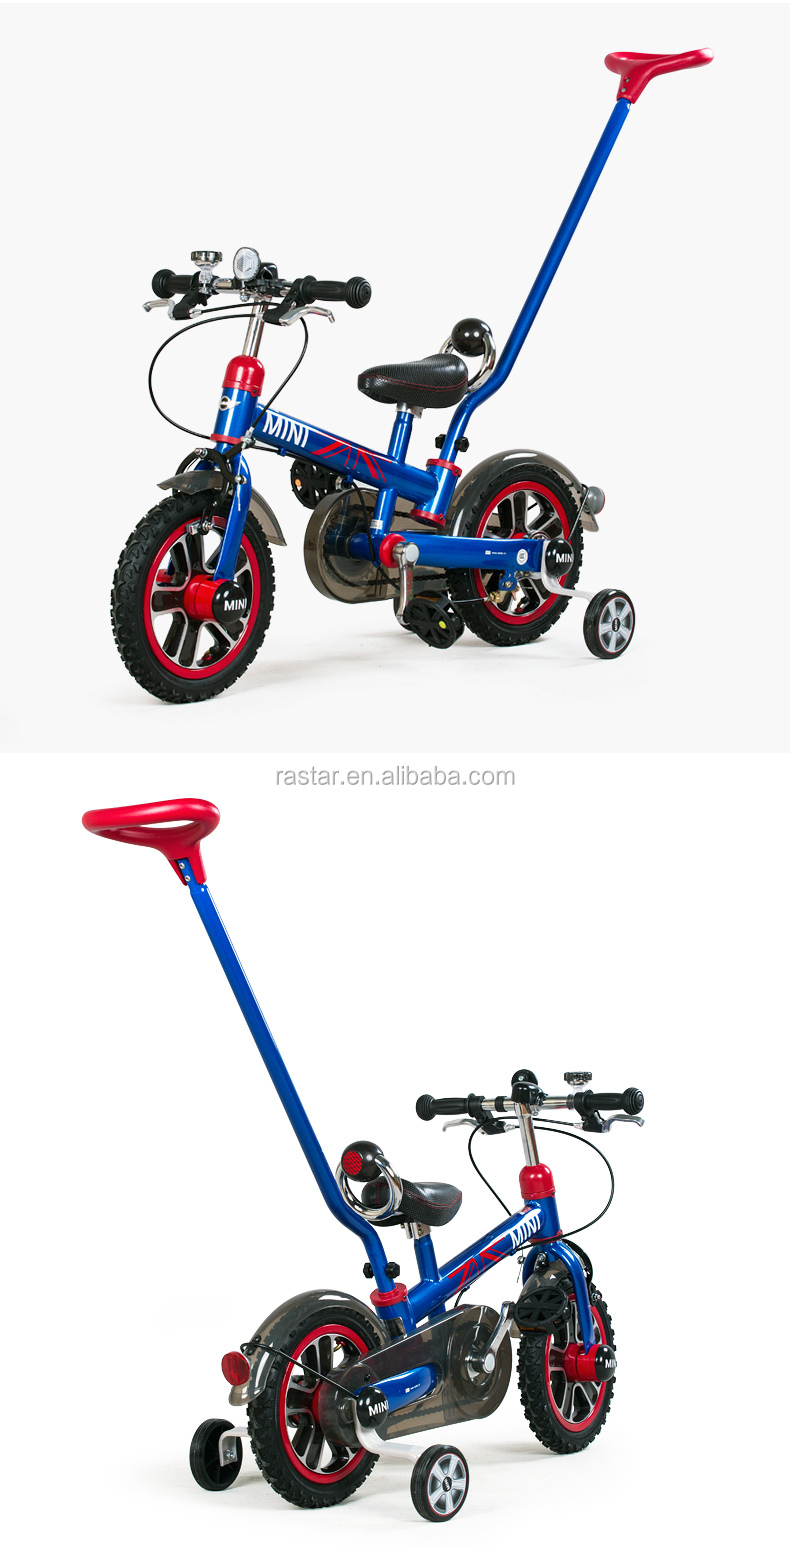 Rastar kids balance wheels bicycle MINI COOPER baby stroller bike with push bar